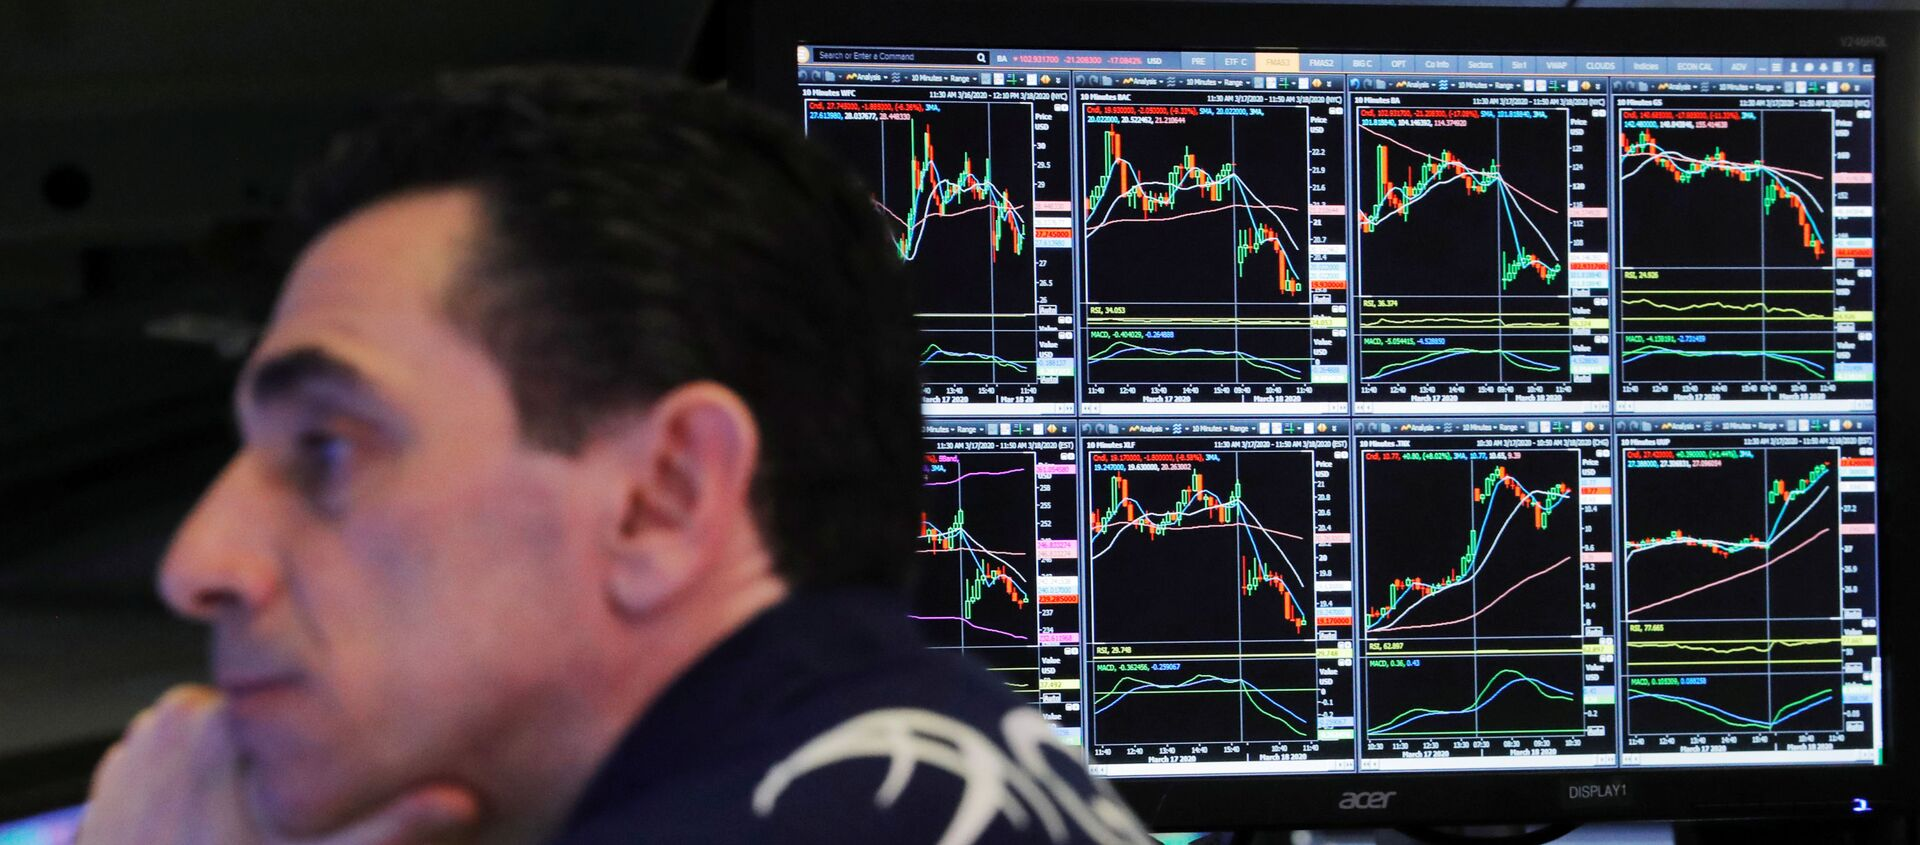 A trader at the New York Stock Exchange works as markets continue to react to the coronavirus disease (COVID-19) inside of the NYSE in New York, U.S., March 18, 2020 - Sputnik International, 1920, 08.02.2021